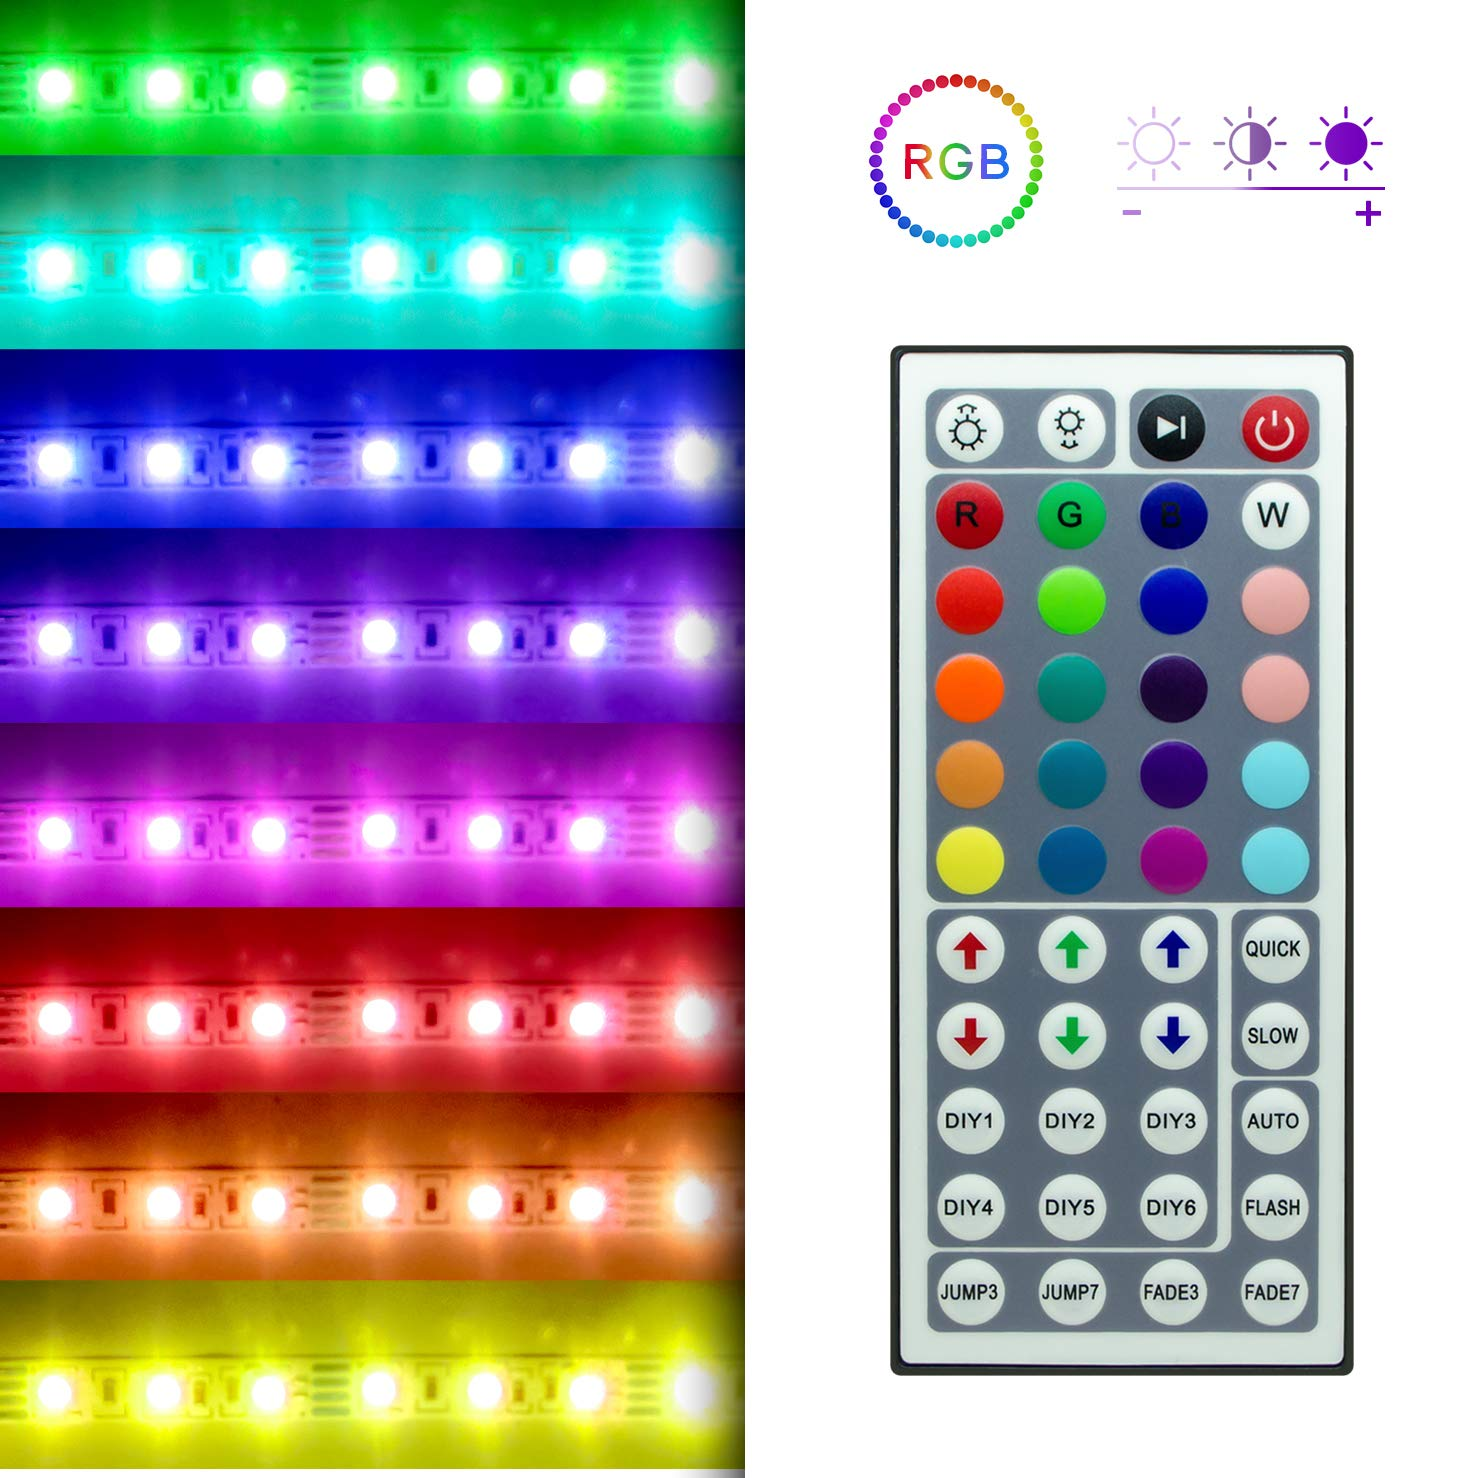 Hitlights High Density Rgb Led Light Strip Kit 164 Ul Listed Lights By The Foot 300 Leds Per Reel Feet Includes Power Supply And Controller 12v Dc Tape Musical